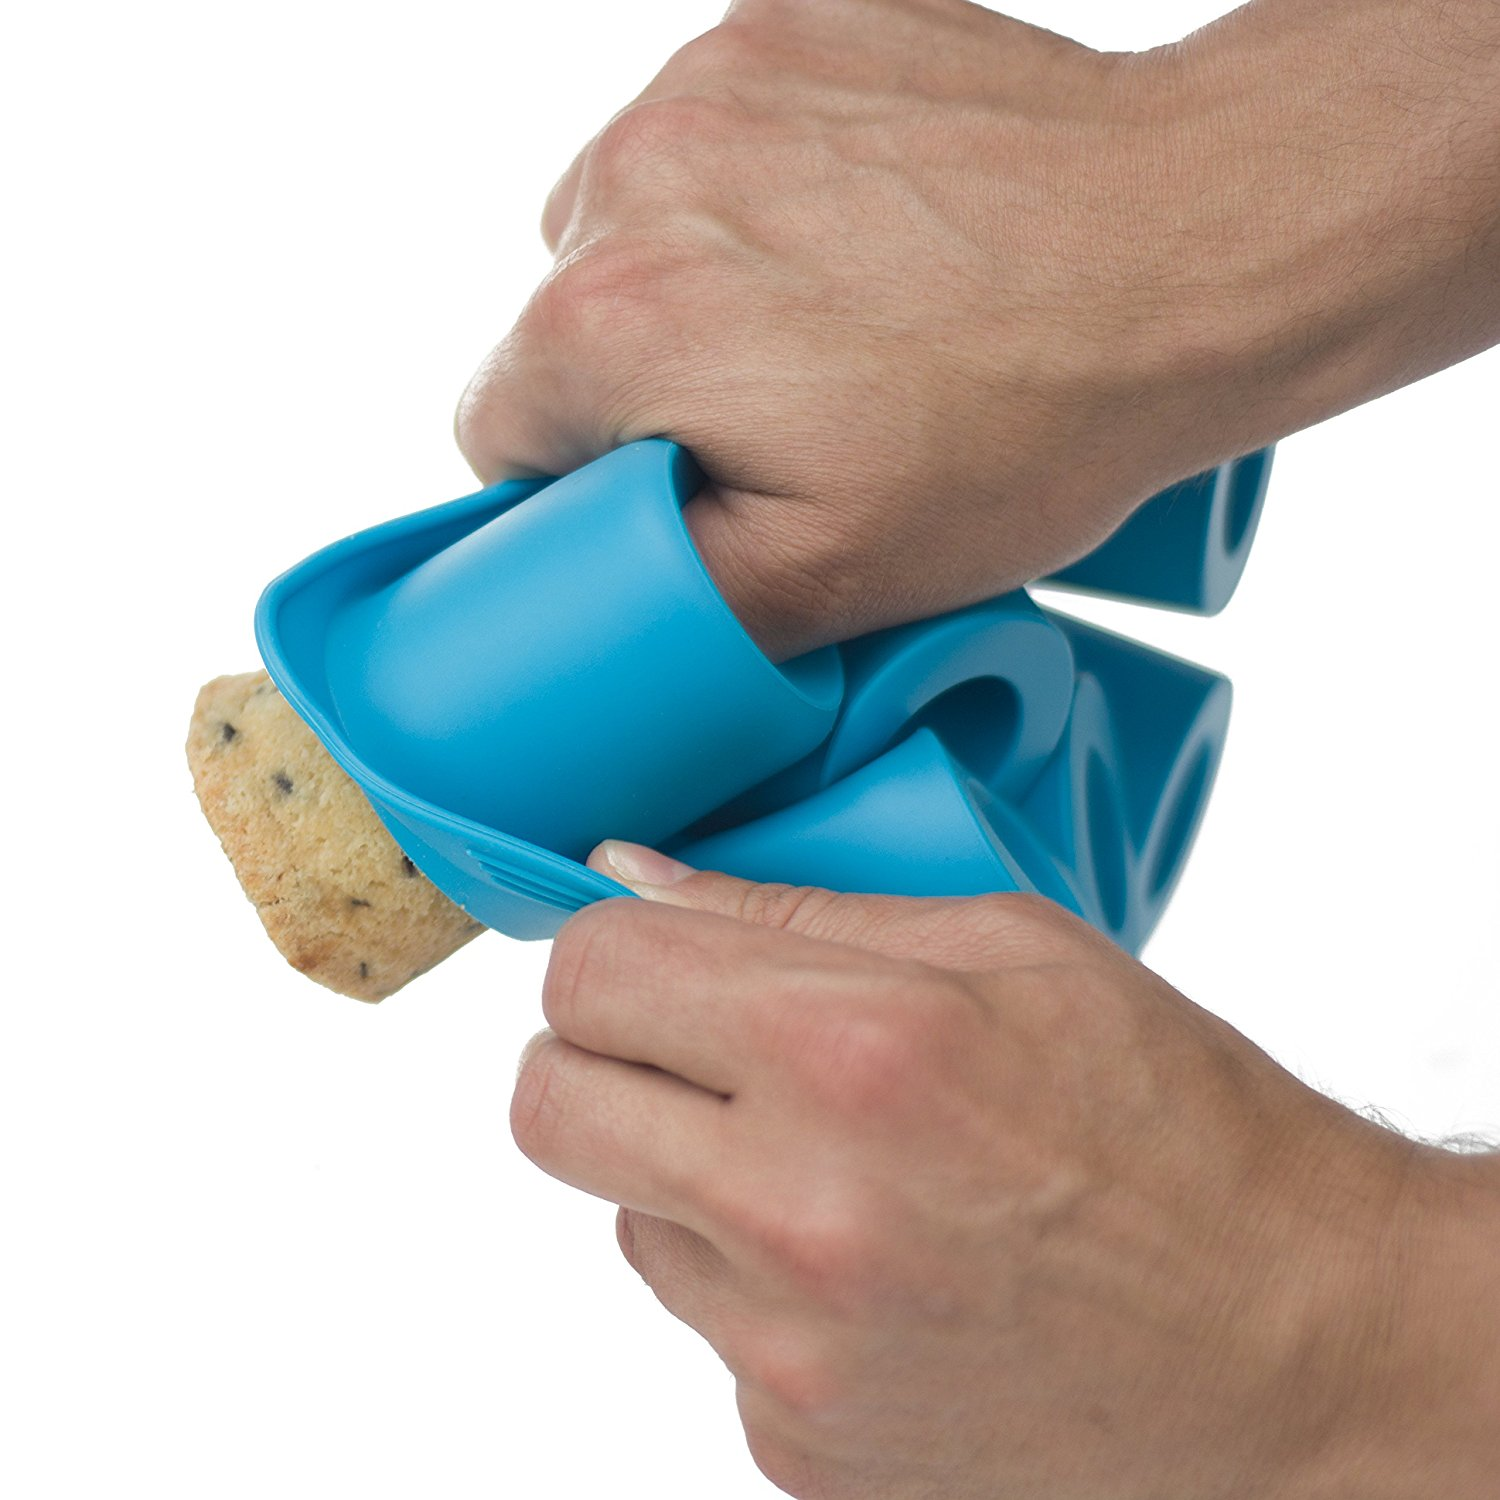 Silicone non-stick molds for easy preparation and cleanup